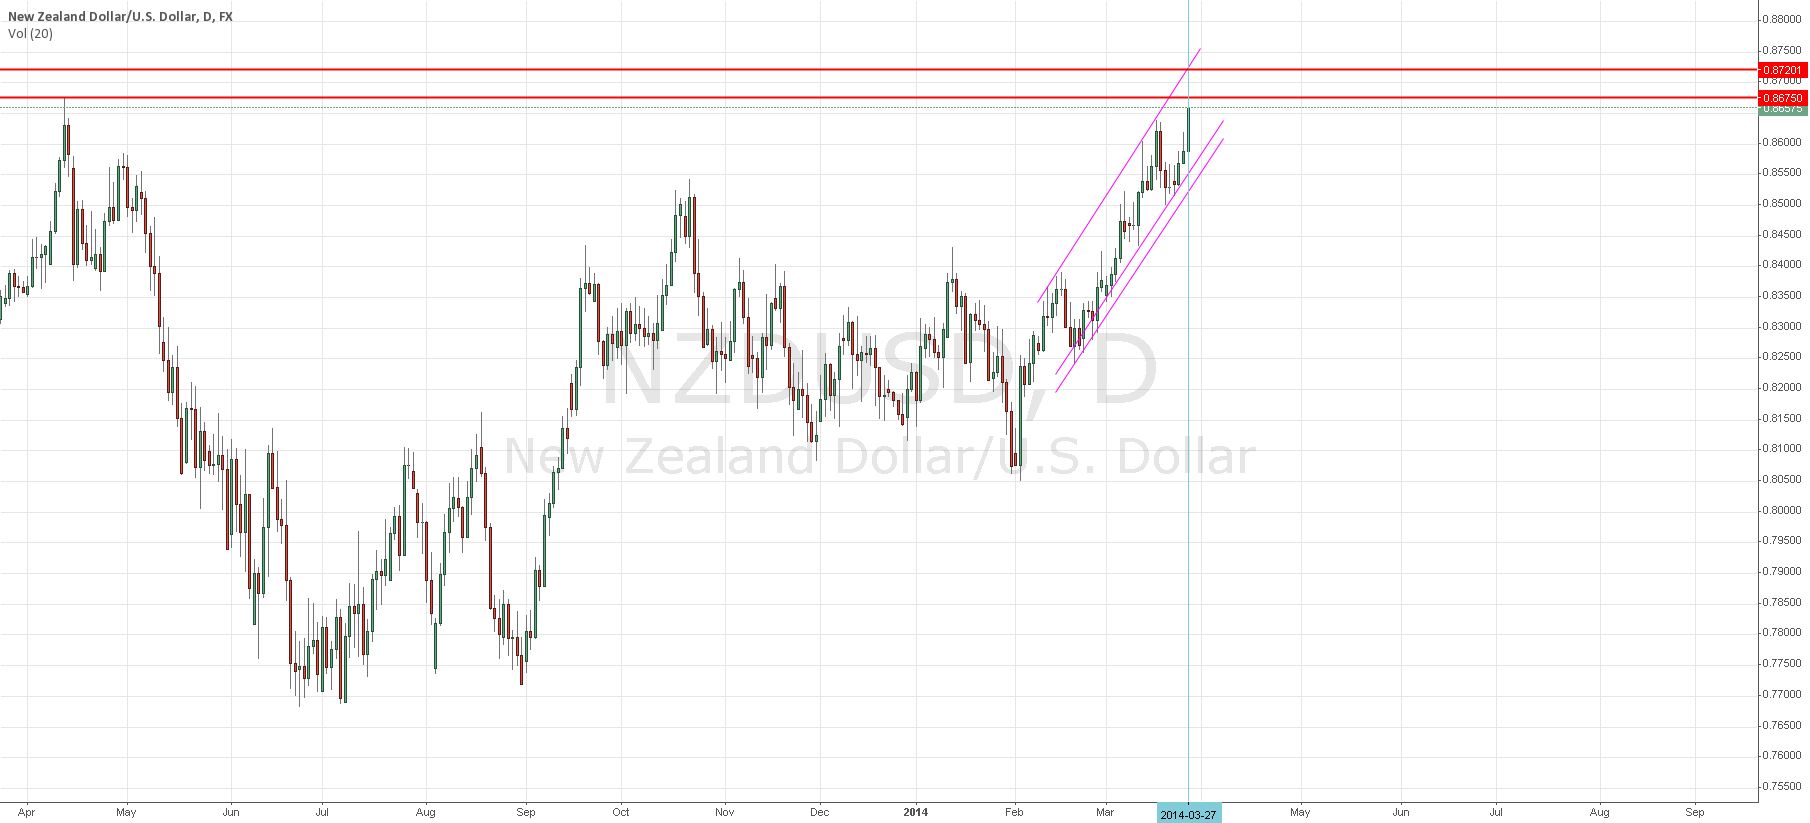 NZD/USD may overshoot to 0.8720 before dropping